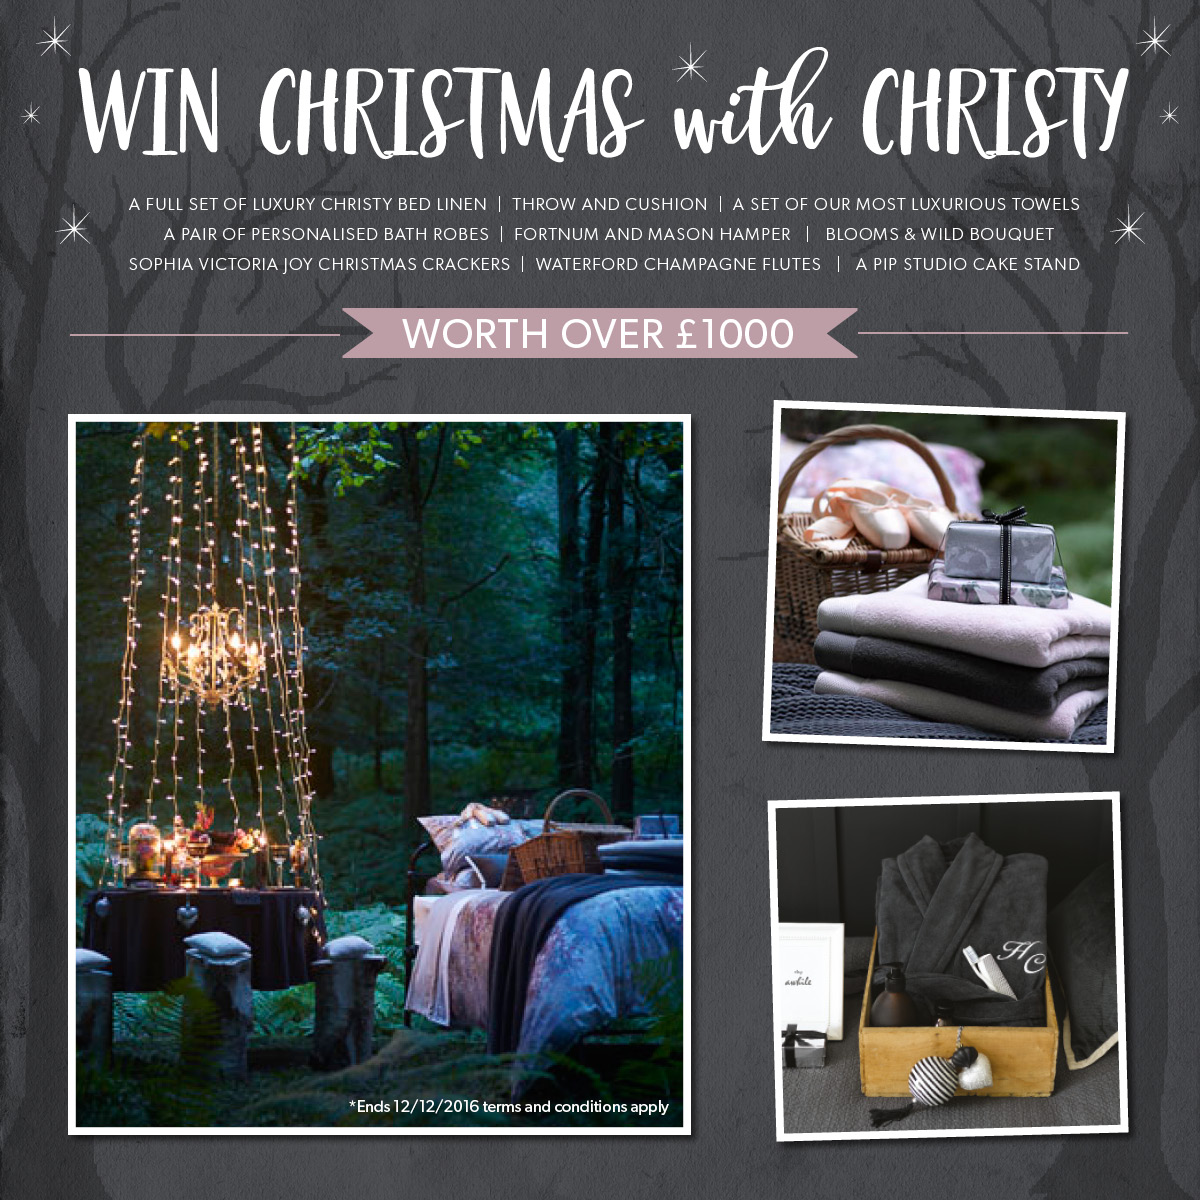 http://www.christy.co.uk/media/competition2/Win_Xmas_UK_WEB.jpg